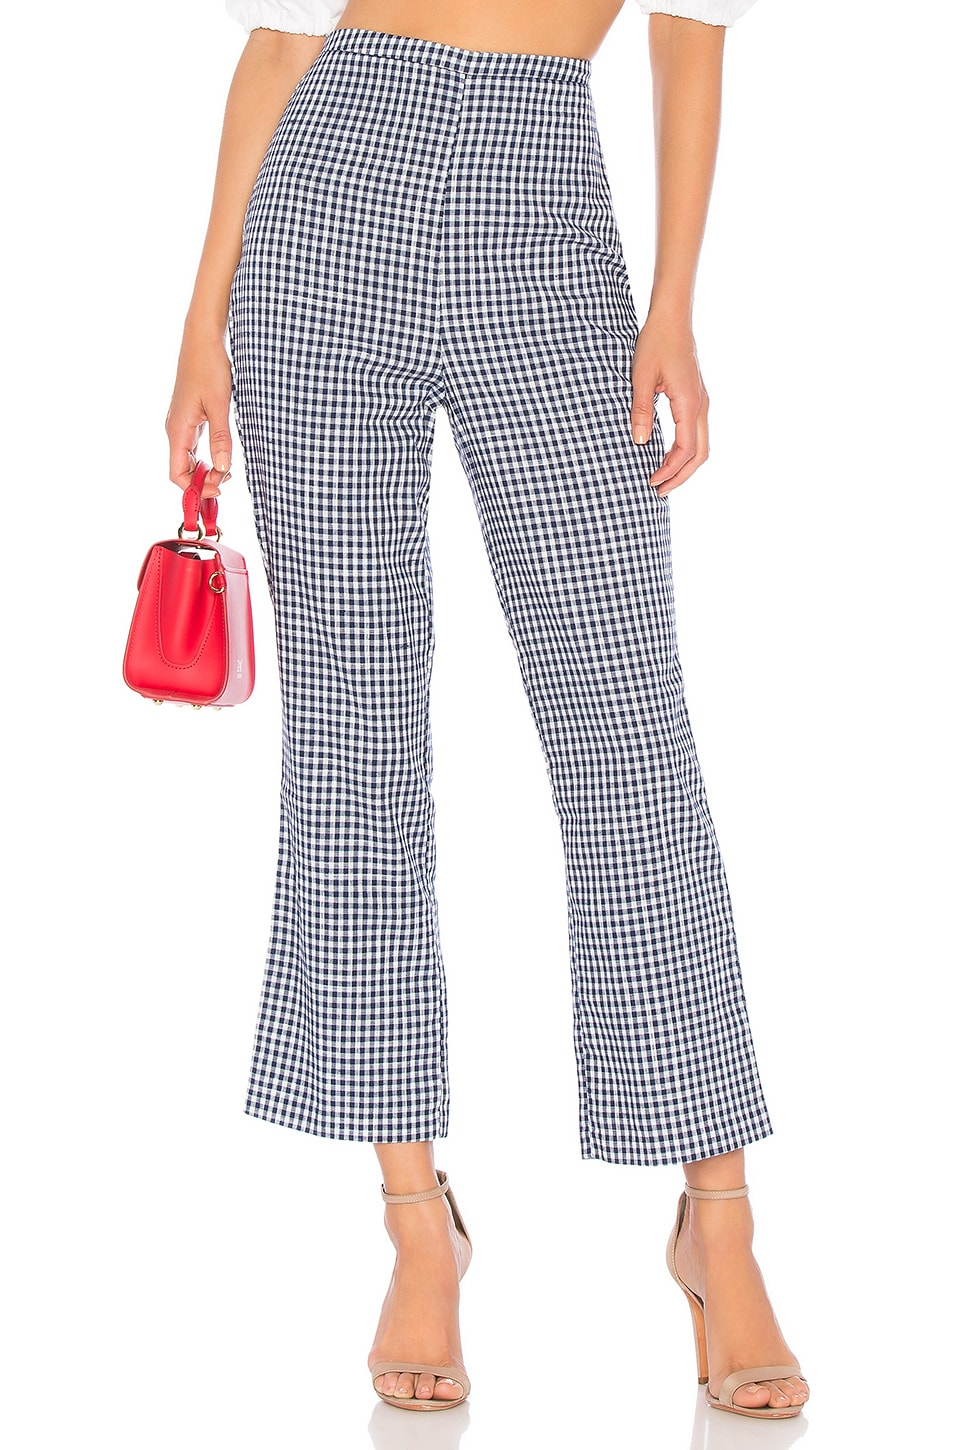 L'Academie The Roxo Pant in Navy Check